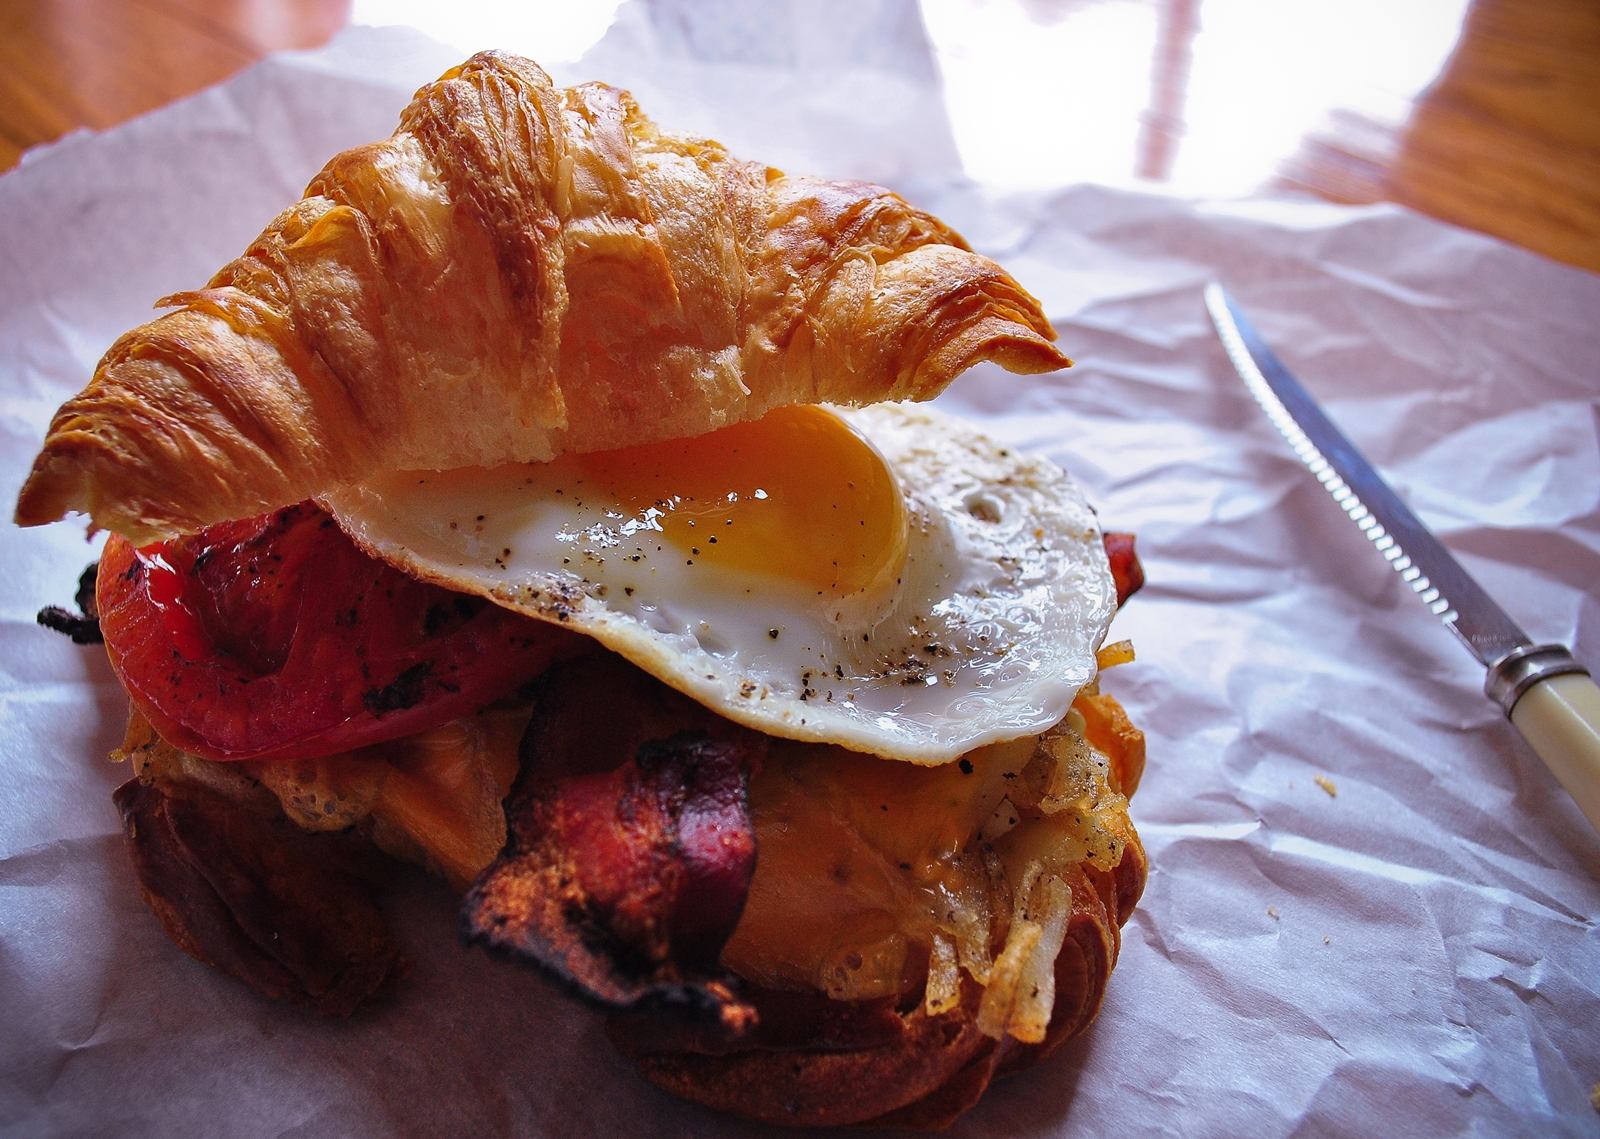 Perfect Breakfast Sandwich Fluffy Croissant With Crispy Bacon Fried Egg And Hash Browns A Recipe For Homemade Mayonnaise Okie Dokie Artichokie